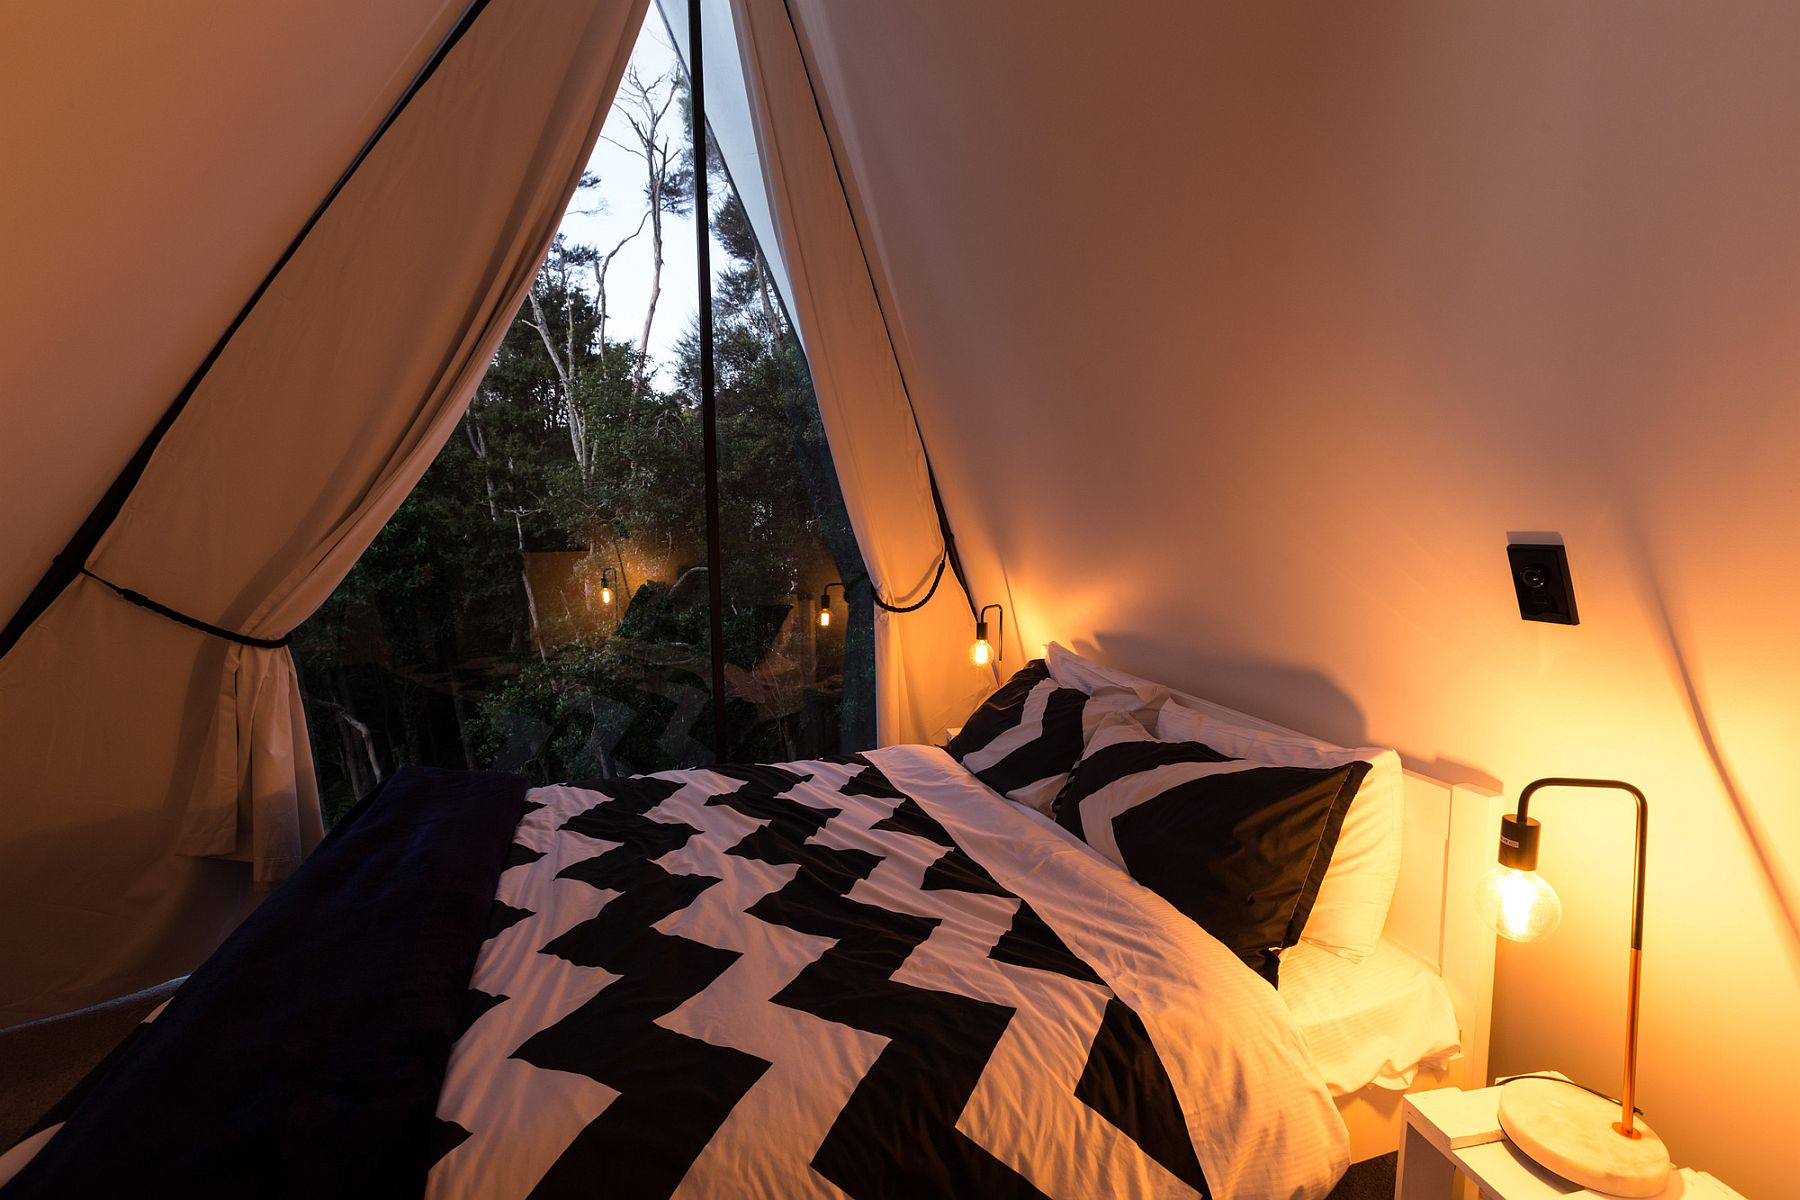 Bedroom on top level with a view of the rainforest canopy